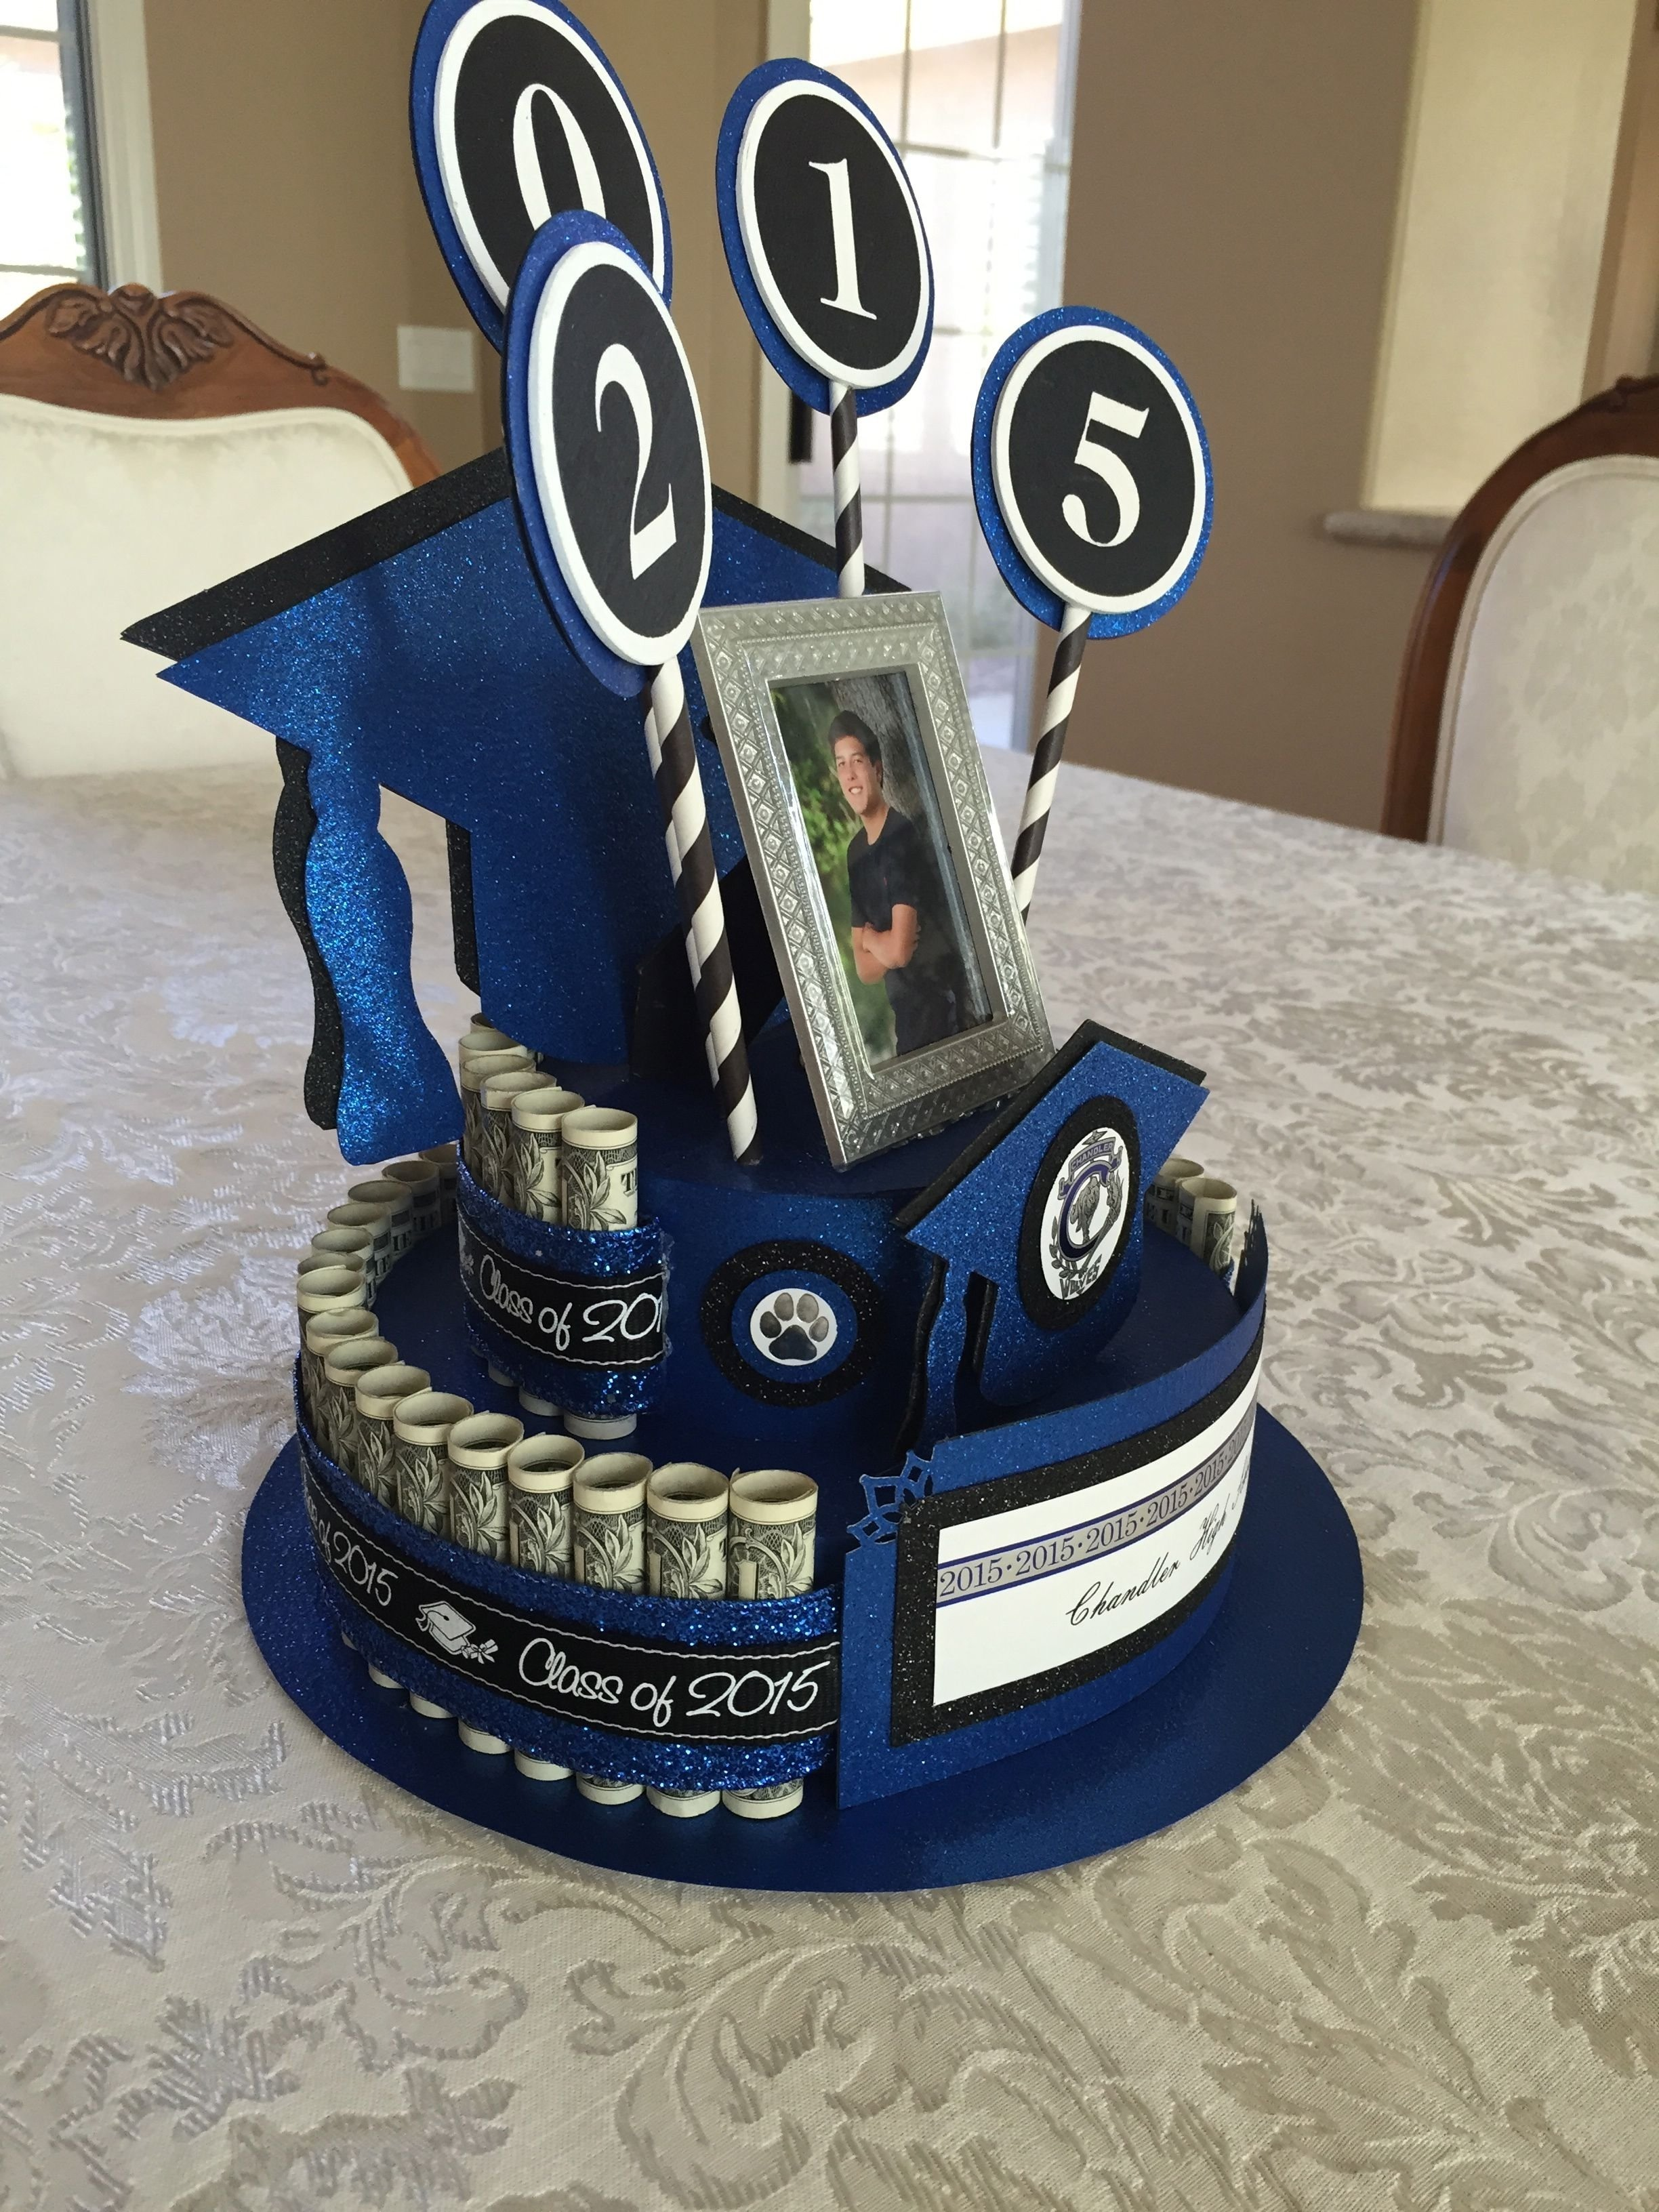 10 Attractive College Graduation Gift Ideas For Son graduation money cake beckys creations pinterest money cake & 10 Attractive College Graduation Gift Ideas For Son 2019